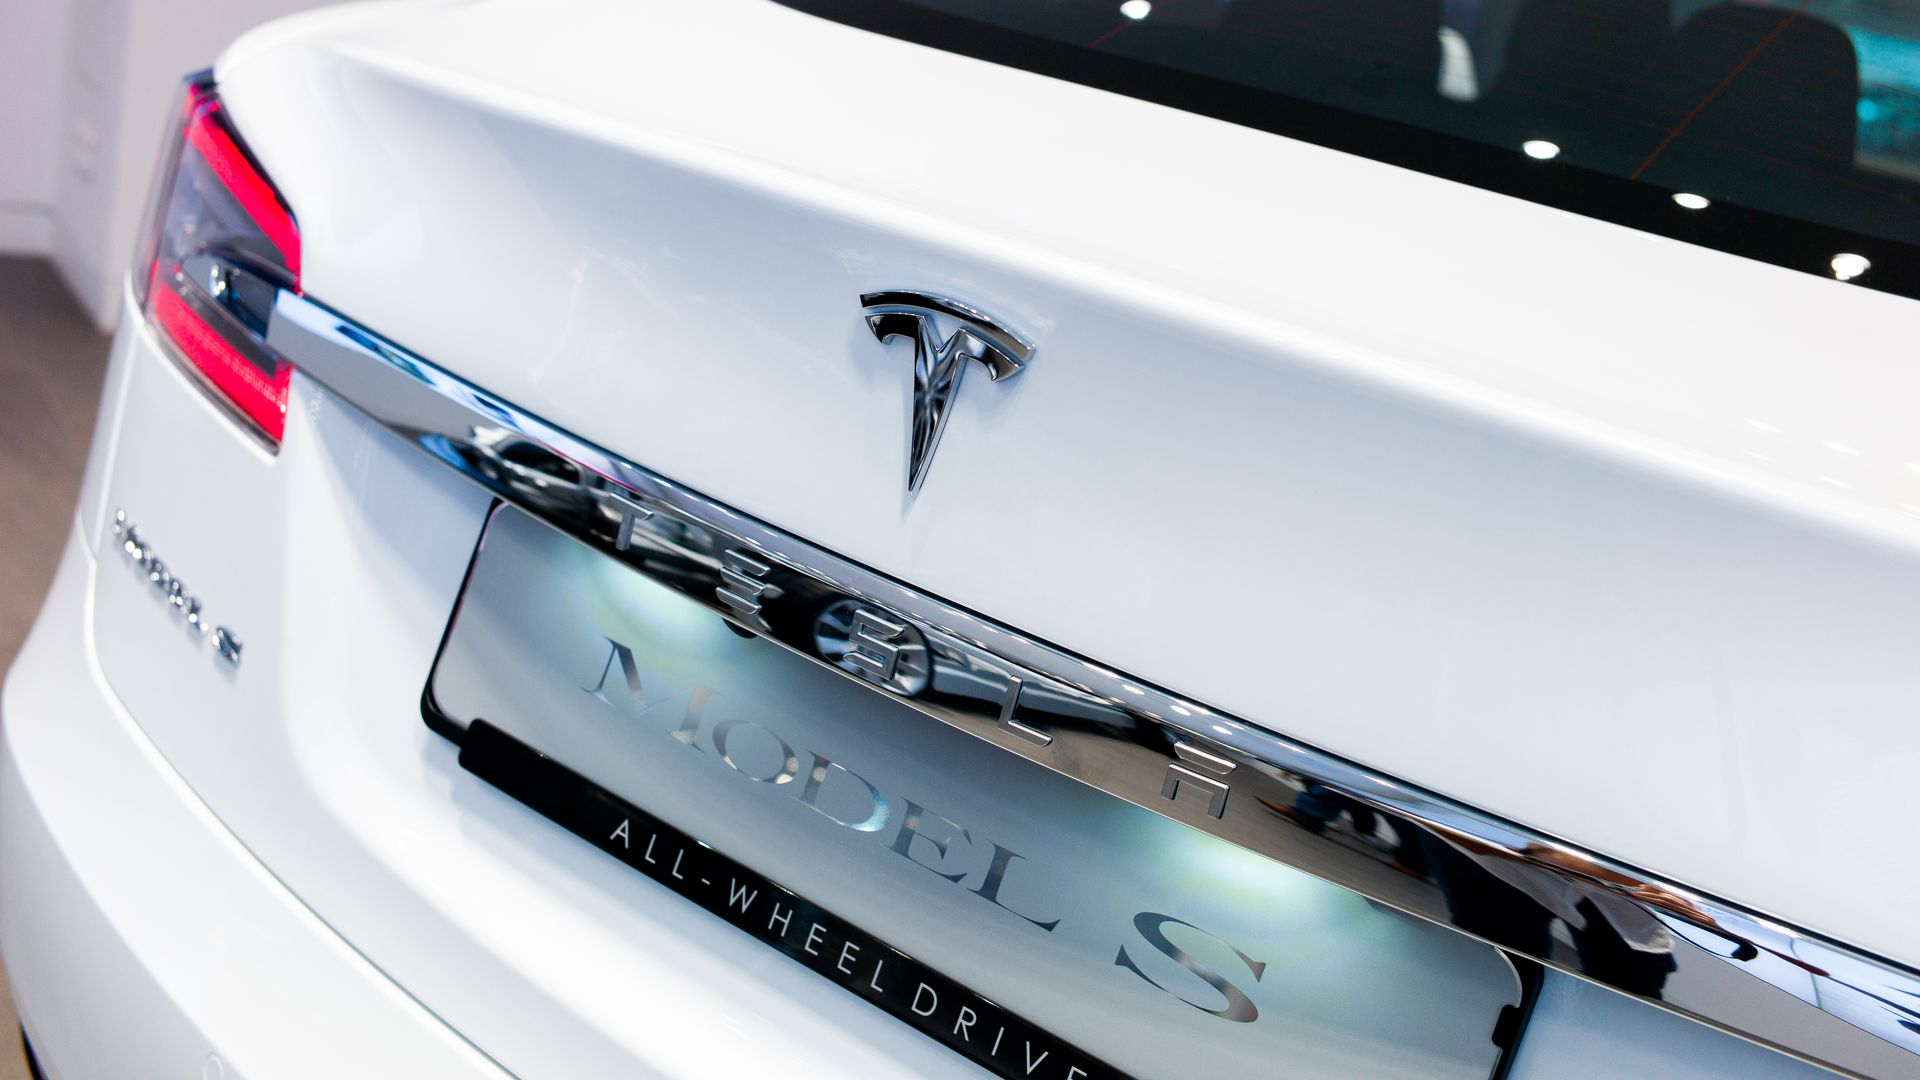 This image is the rear end of a Tesla Model S car.